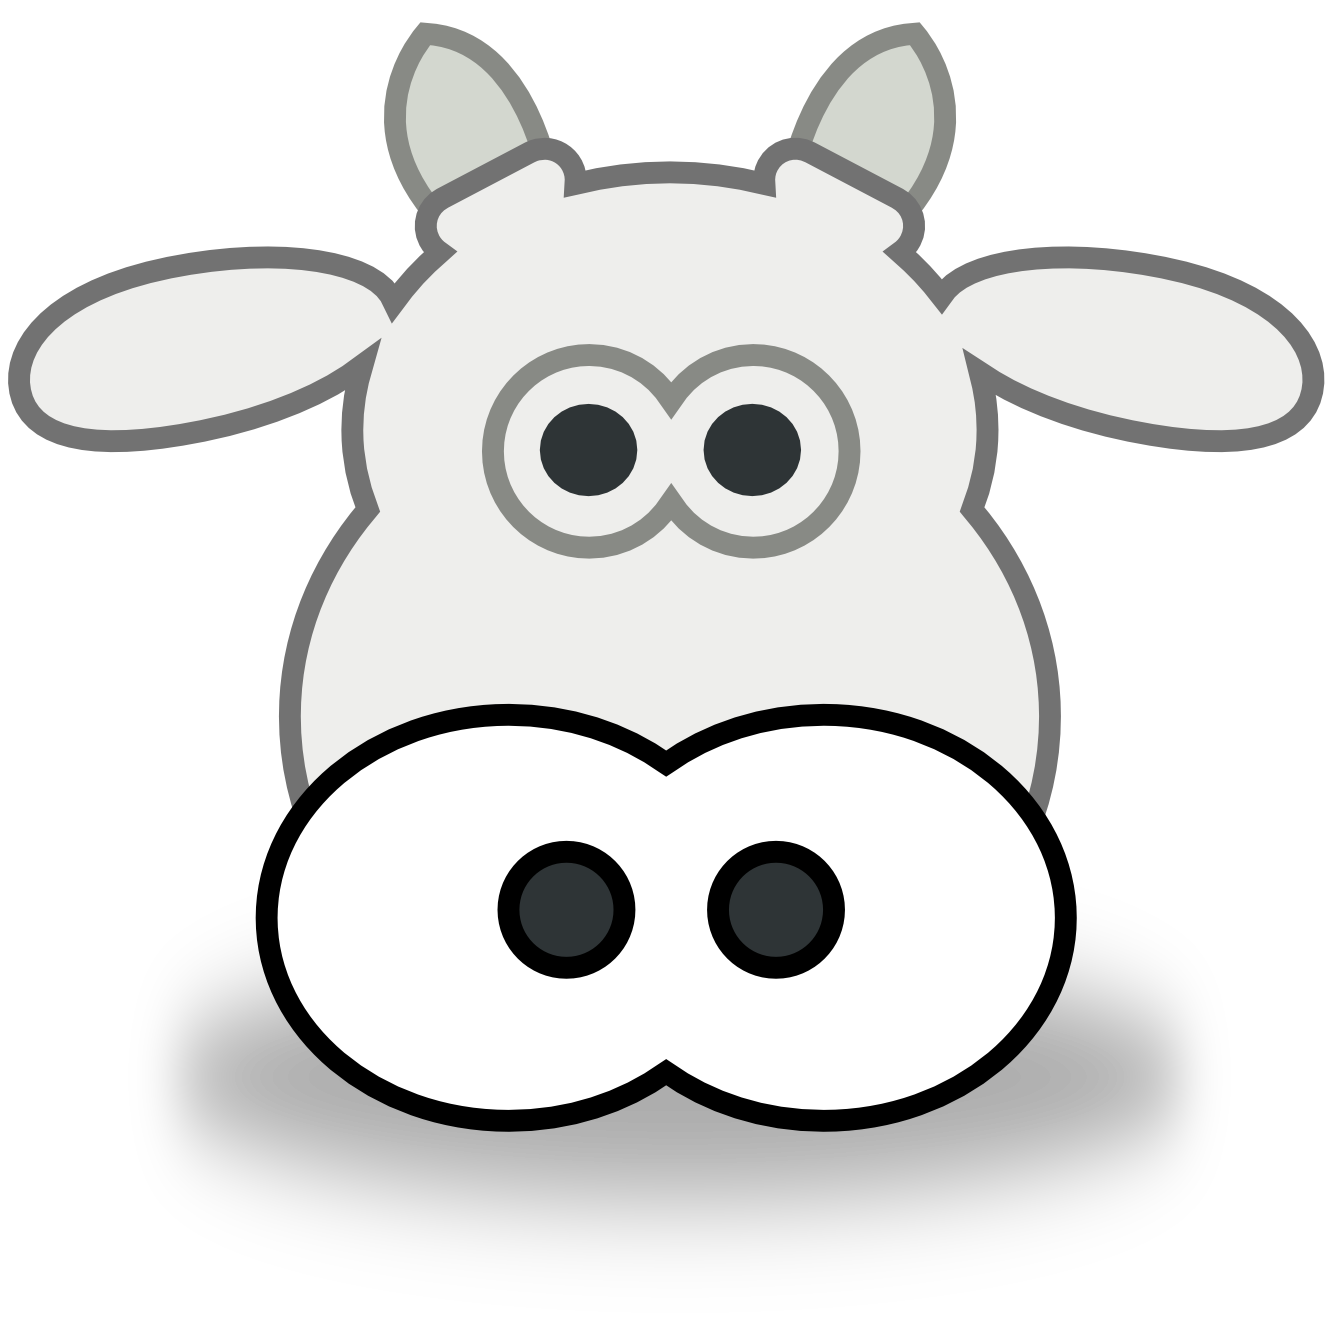 Christmas cow clipart black and white download Cow Face Clipart | Clipart Panda - Free Clipart Images black and white download